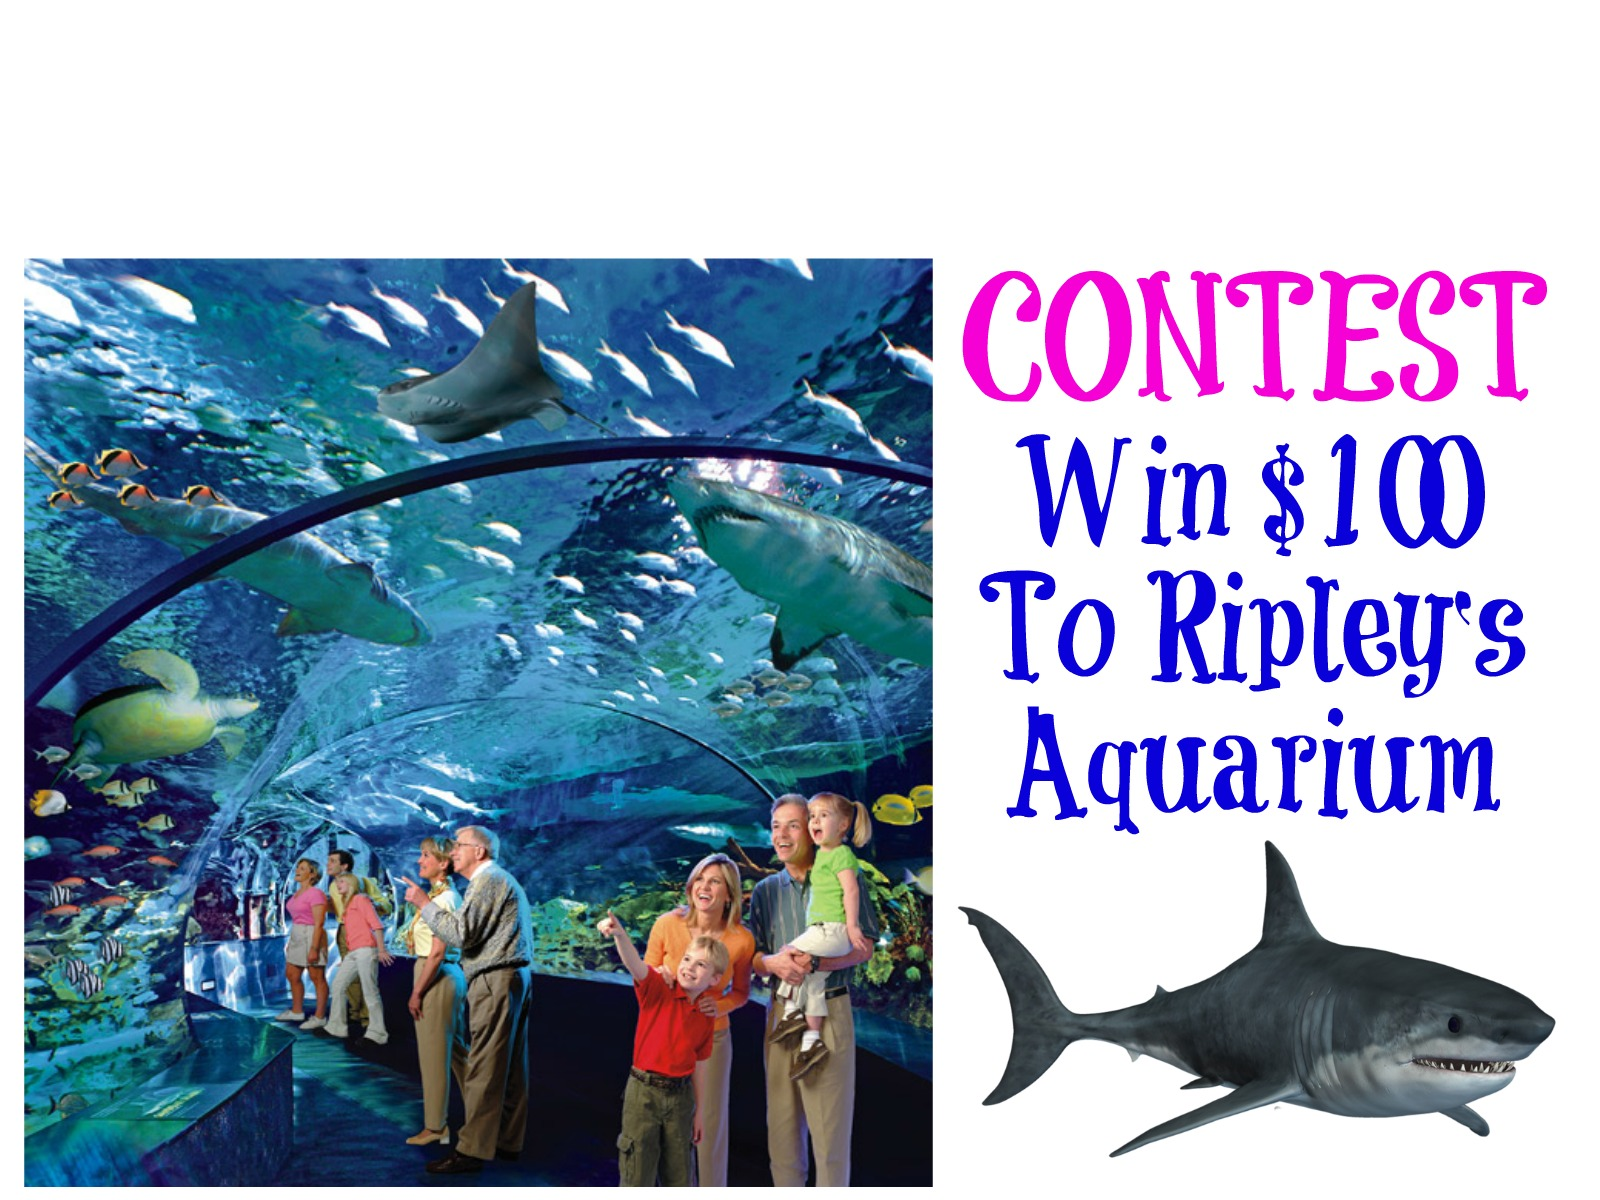 CONTEST: Win $100 to Ripley's Aquarium